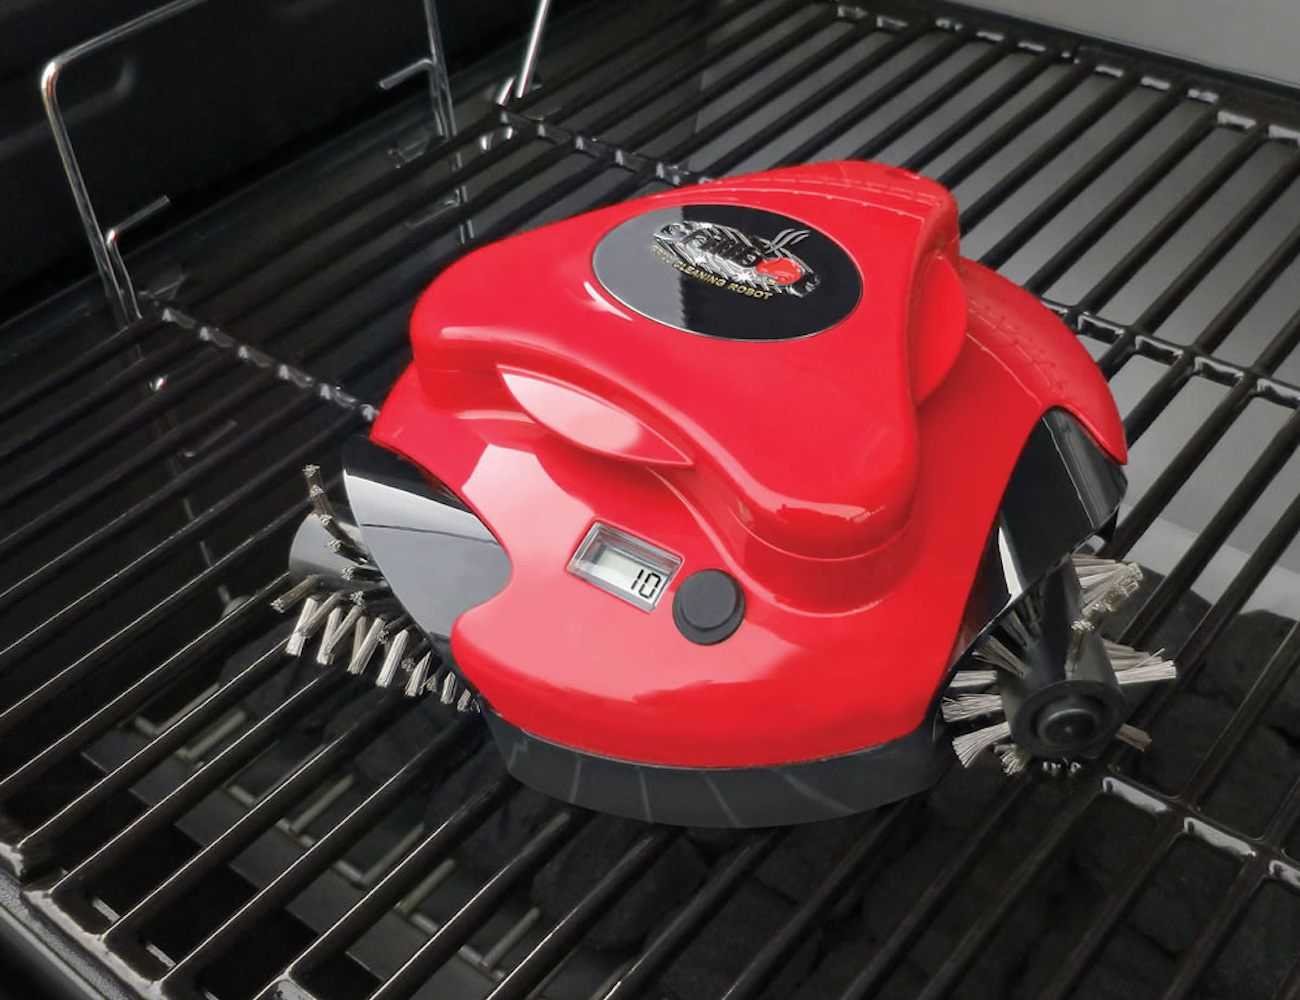 Grillbot smart grill cleaner